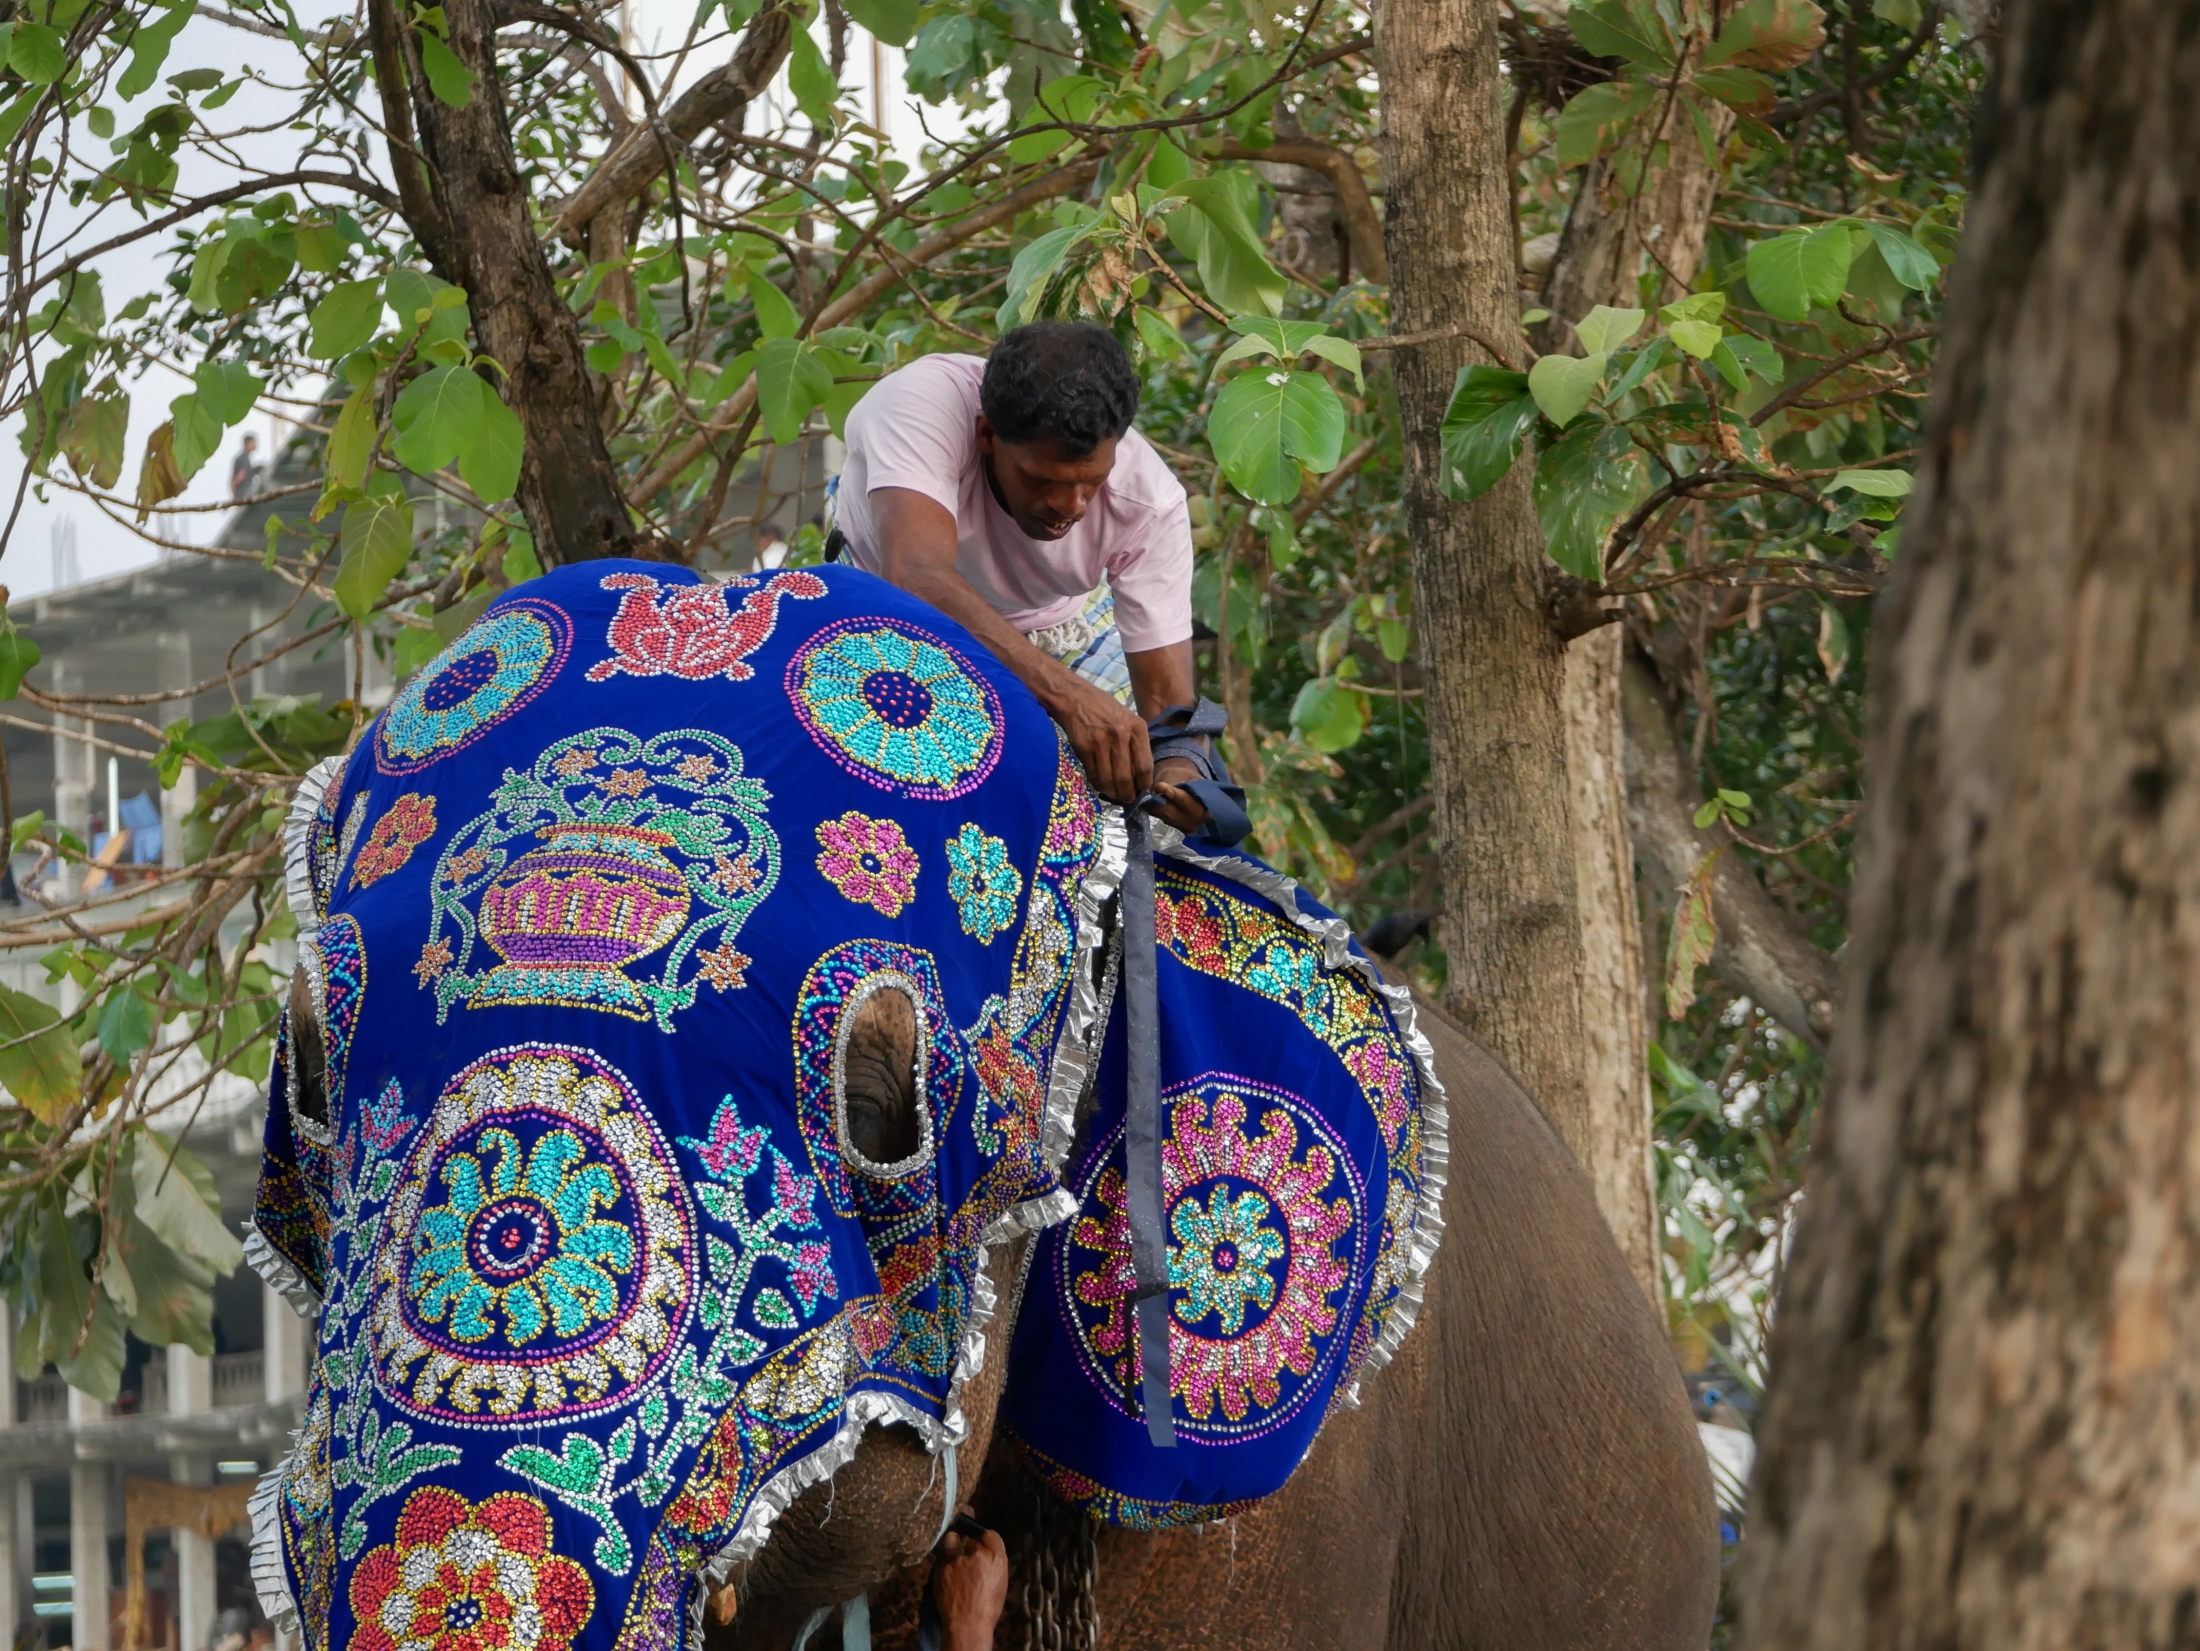 A mahout ties an ornate ear covering onto an elephant ahead of the annual two-day February full moon festival in Colombo, Sri Lanka, 2019.